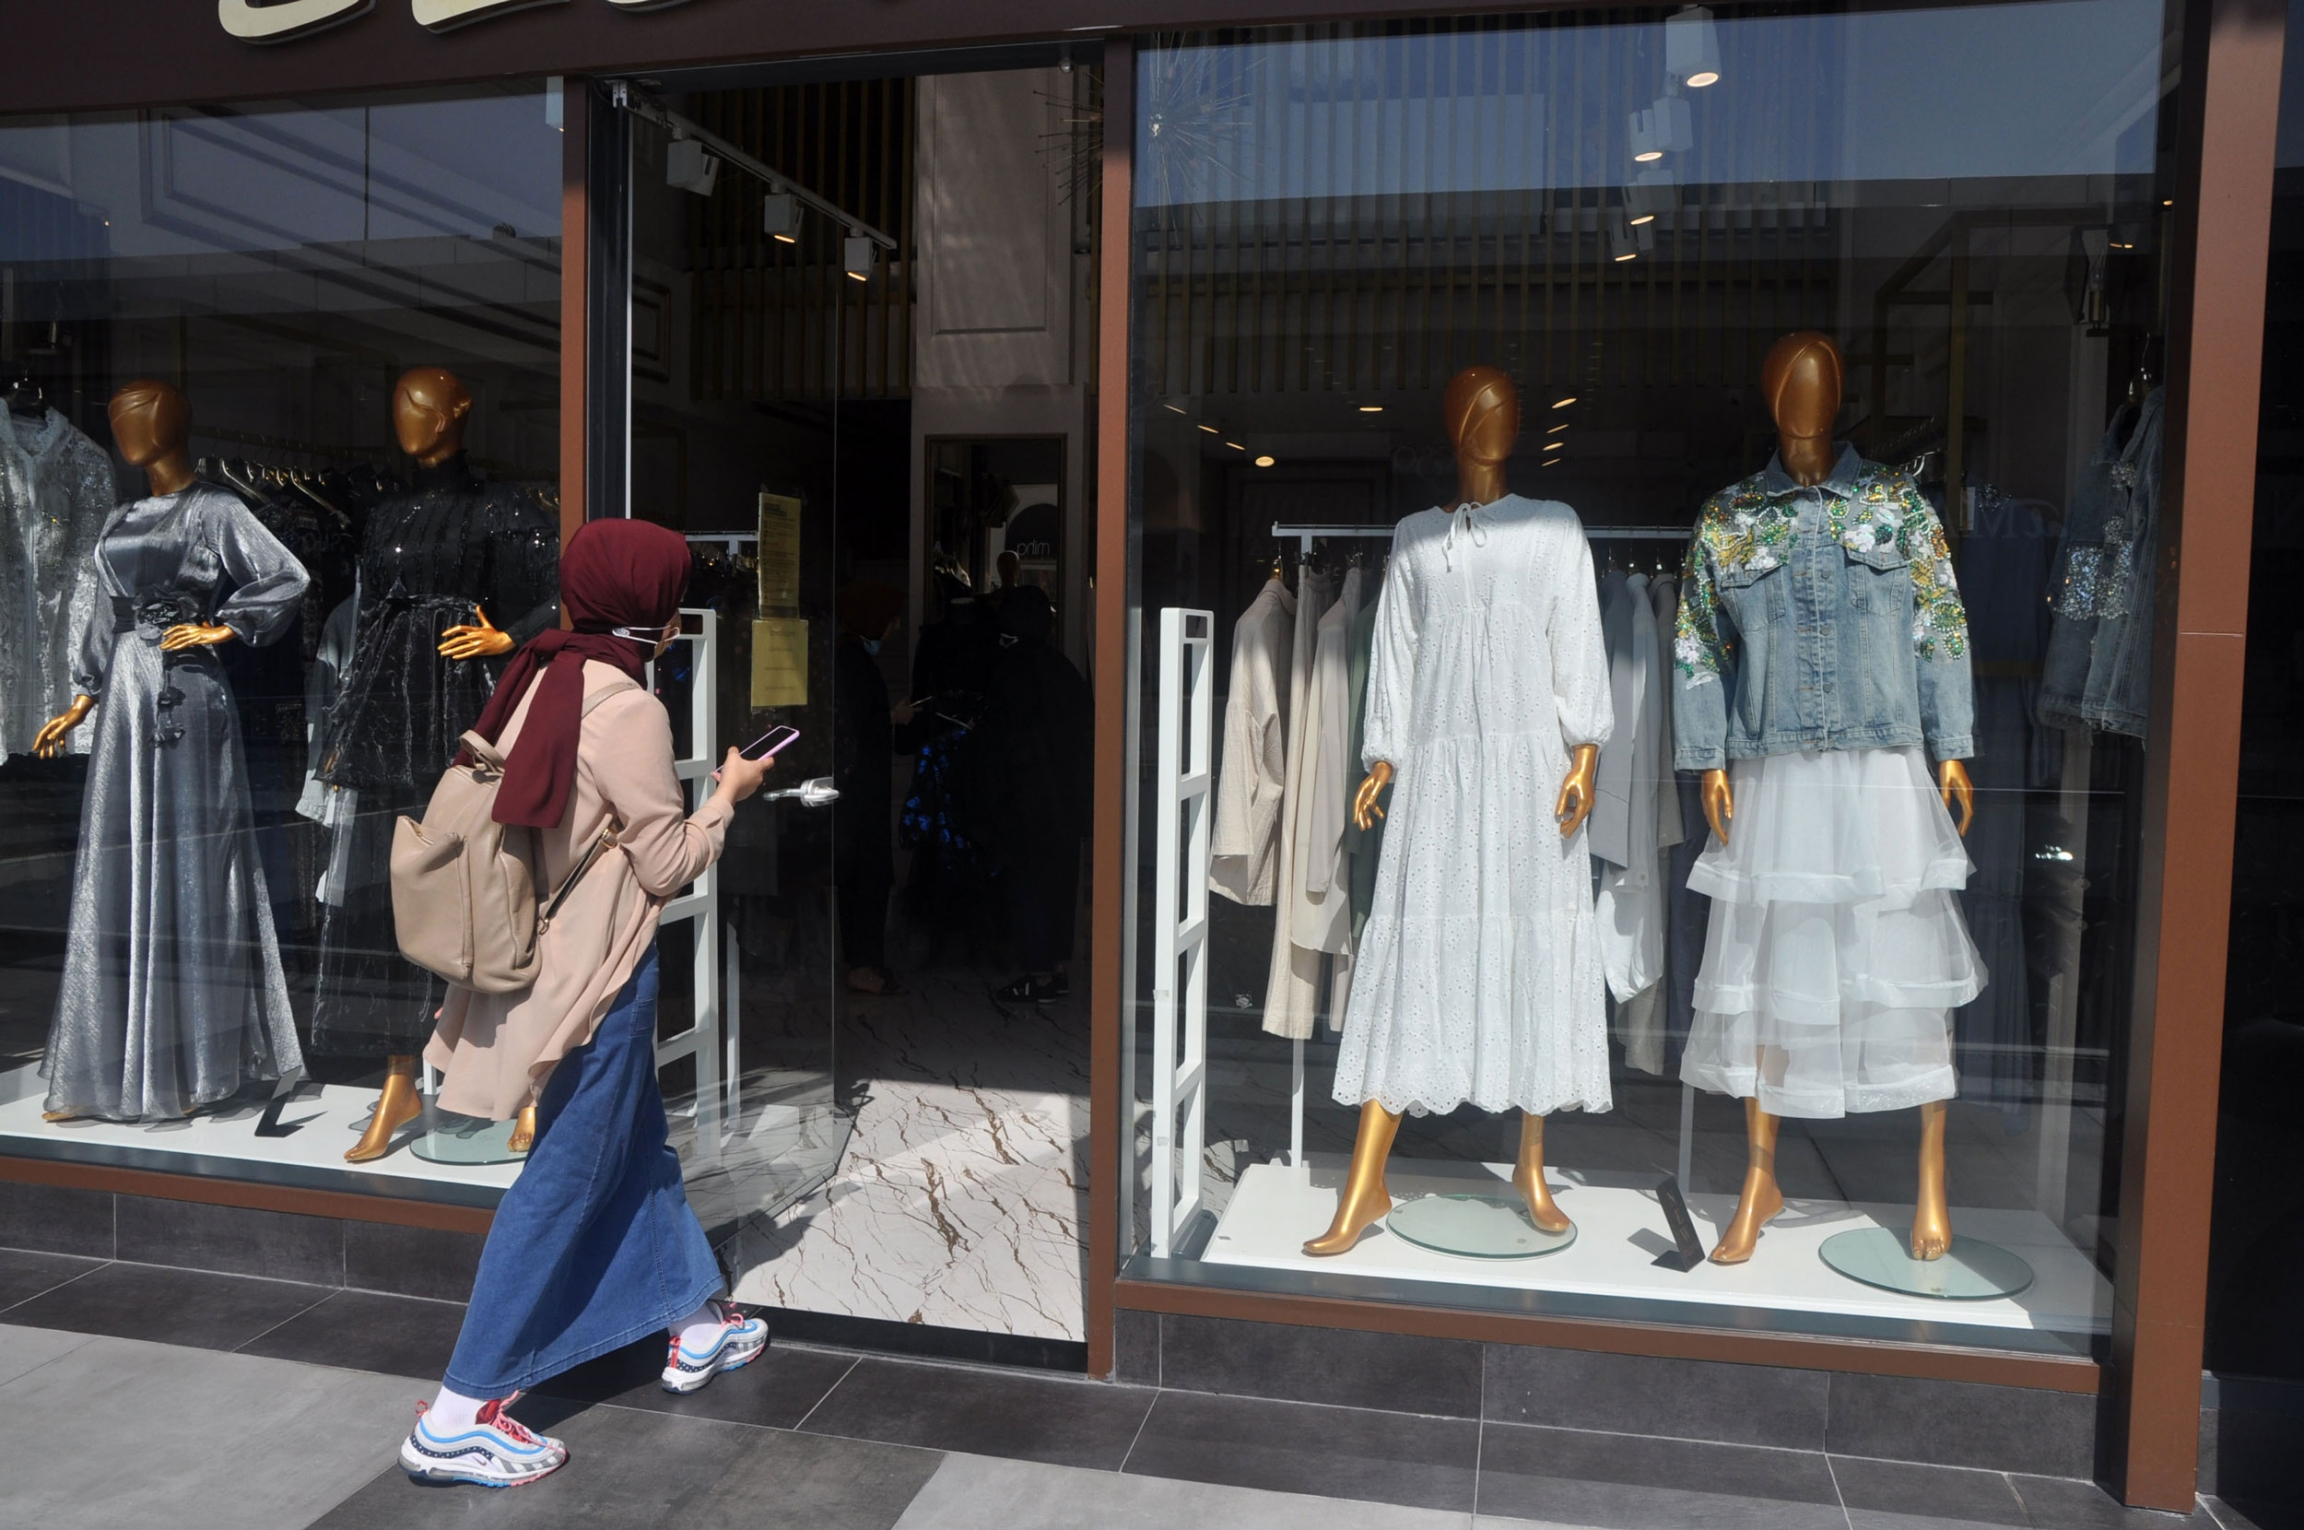 A woman enters a modest fashion clothing store in Istanbul.